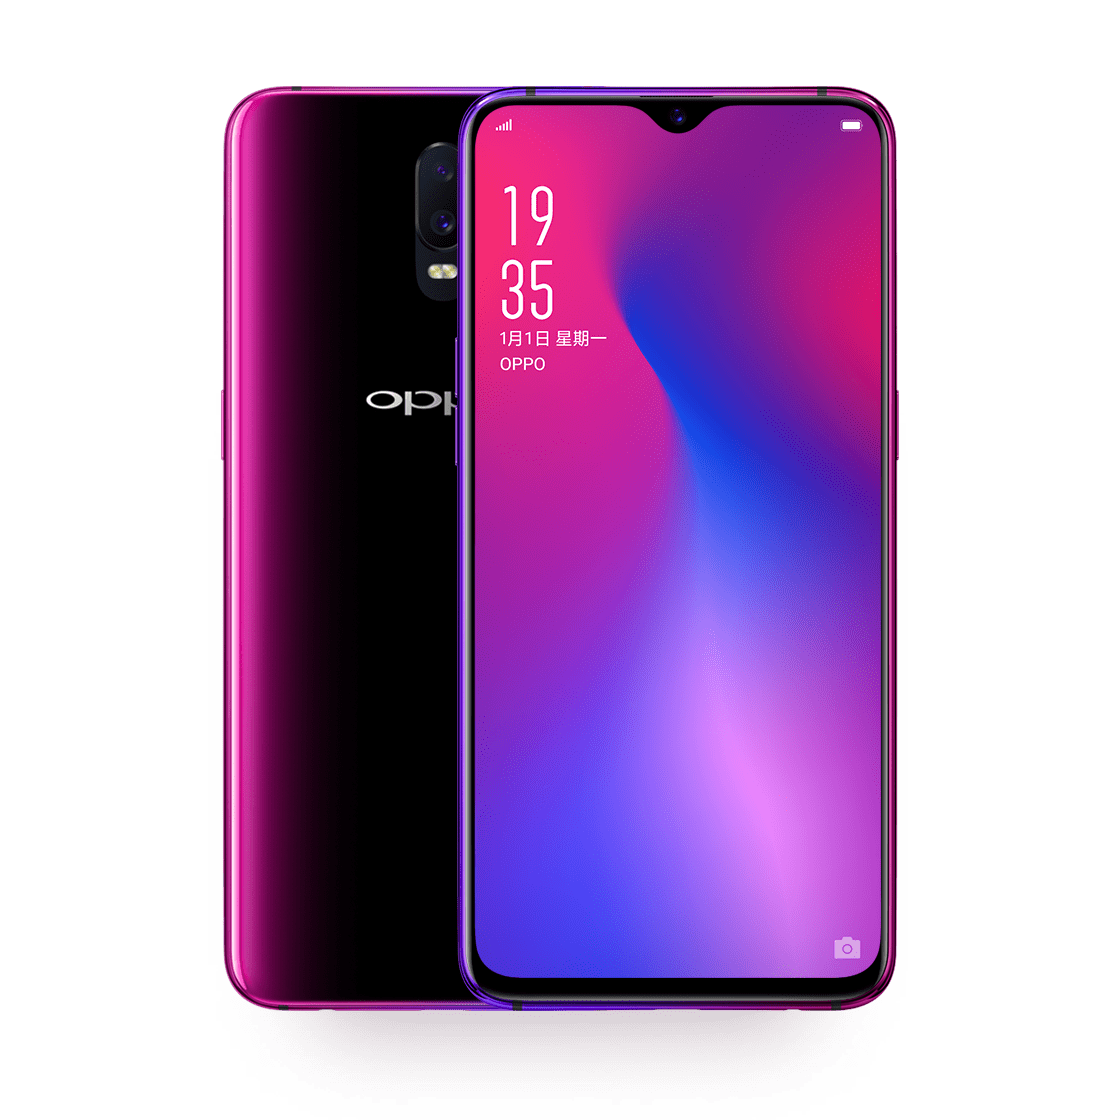 OnePlus 6T: Coming to T-Mobile this October priced at $550